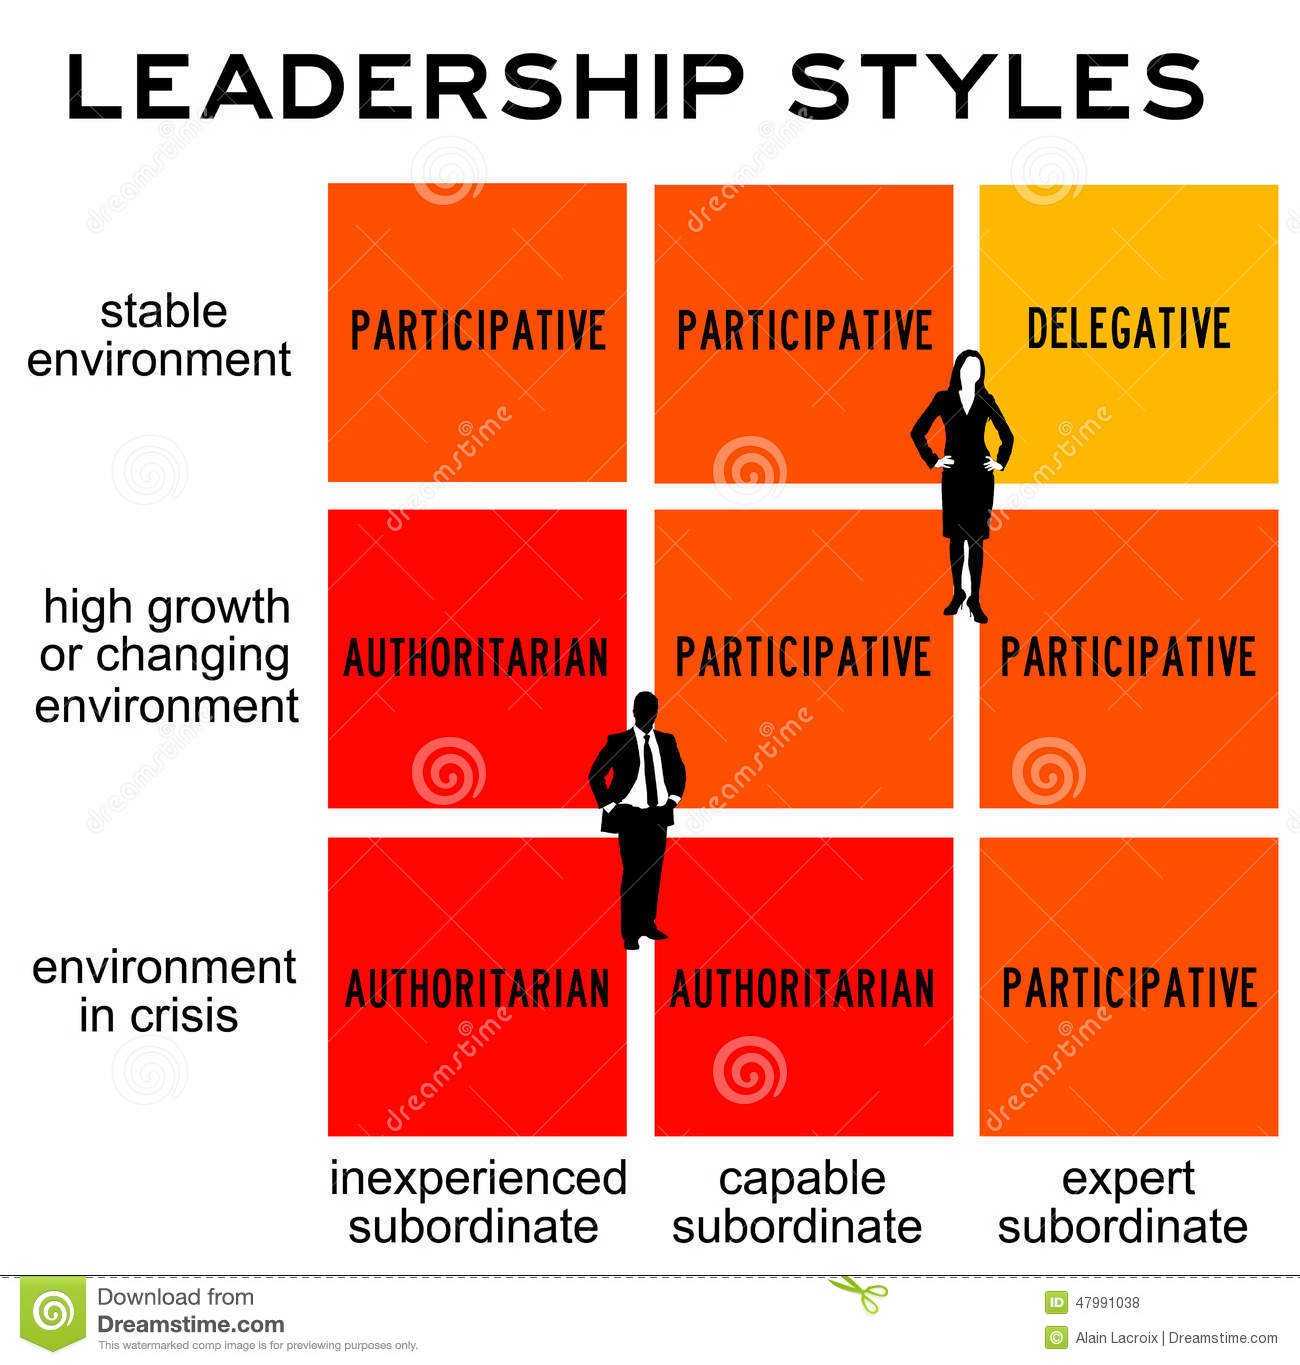 leadership styles in the book endurance Ent as a critical component in leadership leadership styles and practices c h a p t e r 2 45212_ch02_pass3indd 17 06/10/12 12:02 pm to a leadership program was raised his answer—that he was the leader and his staff did not need leader-ship development—exemplifies the.